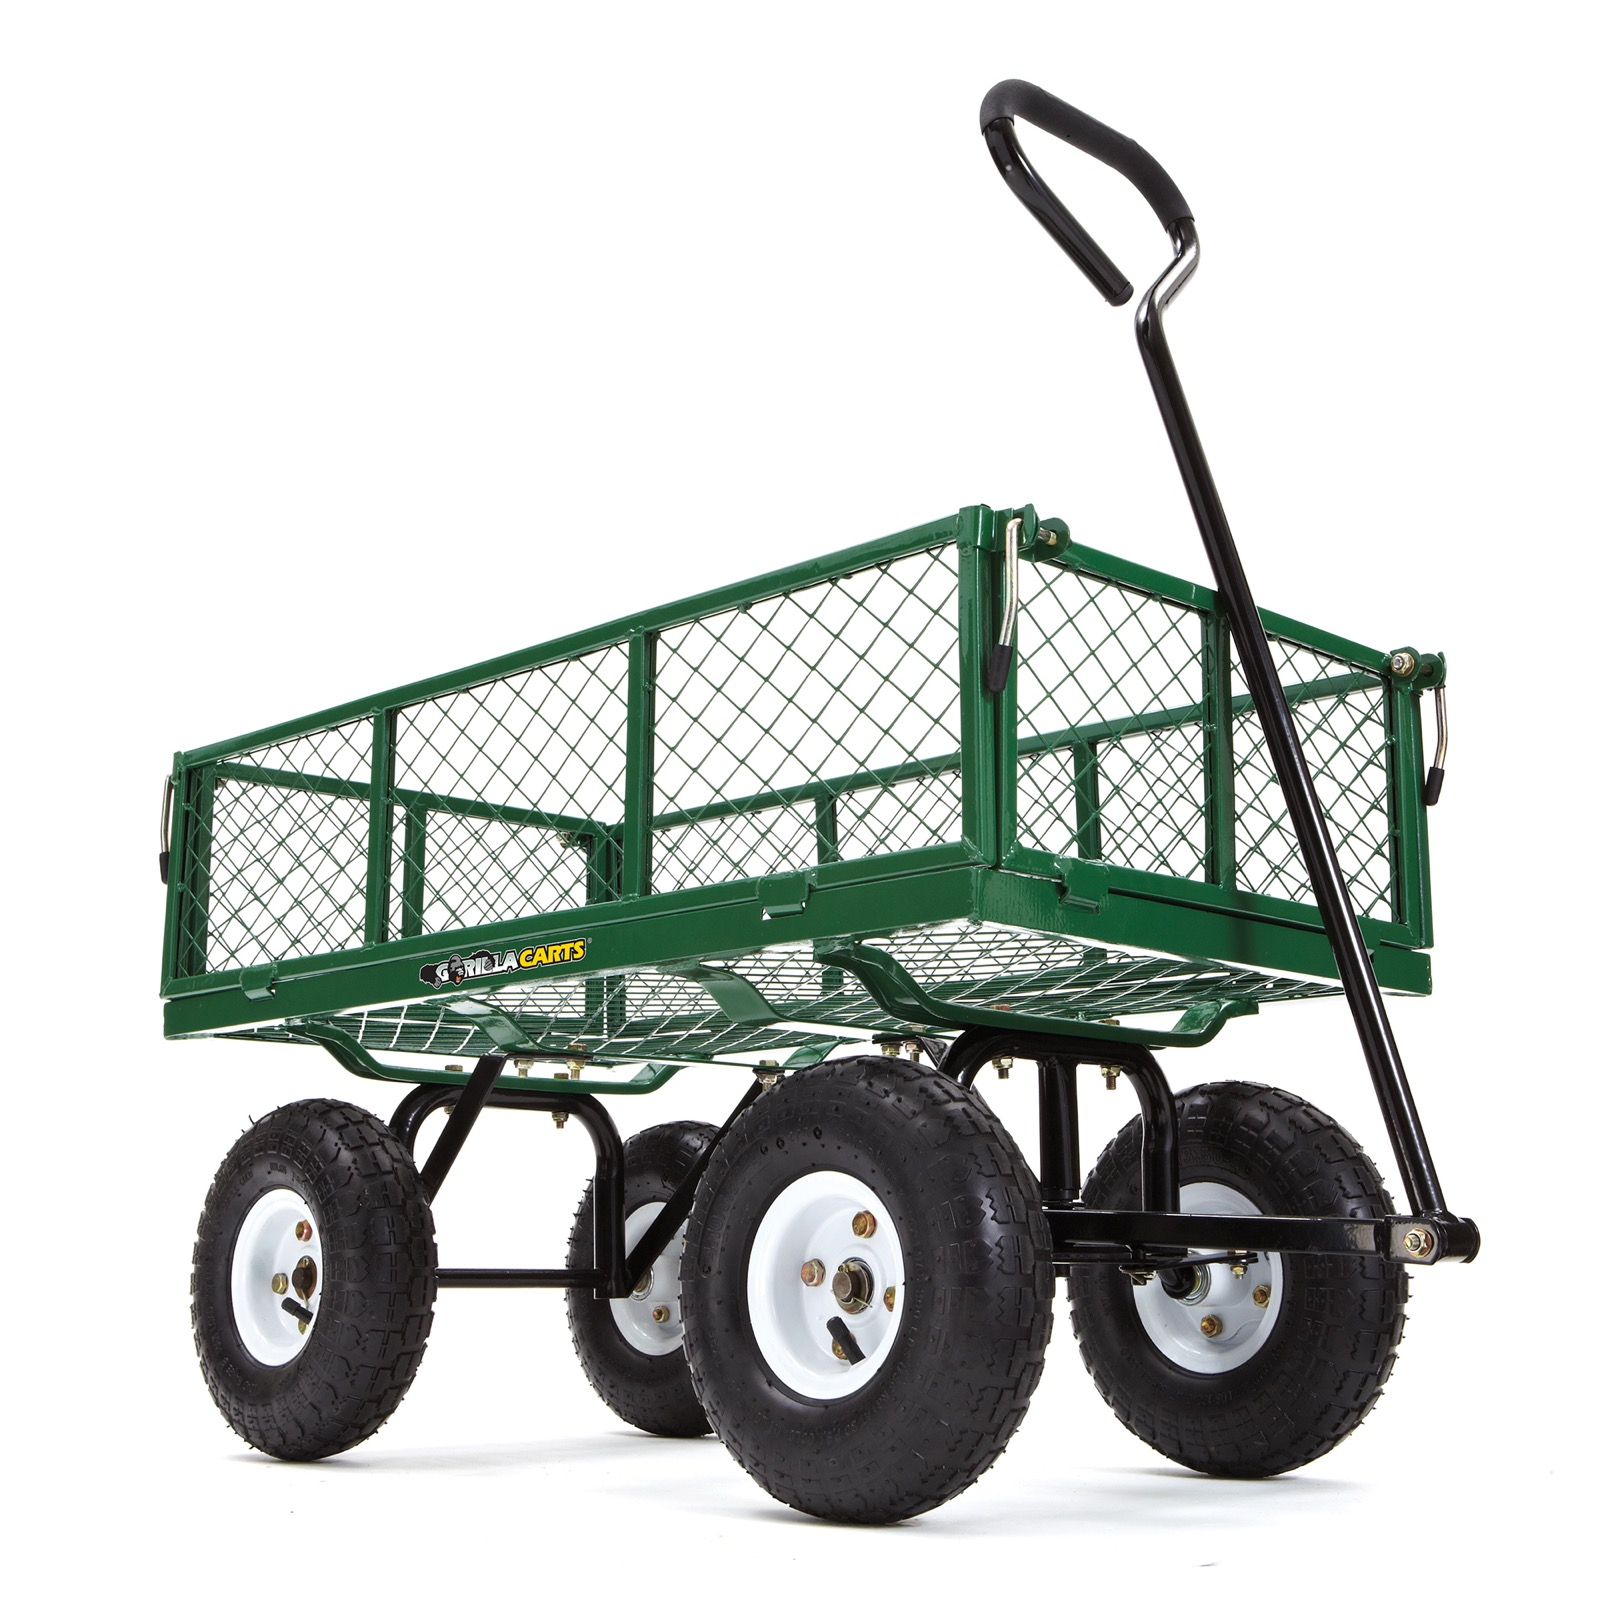 Gorilla Carts Lawn Cart Steel Garden Cart with Removable Sides & 400lbs Capacity